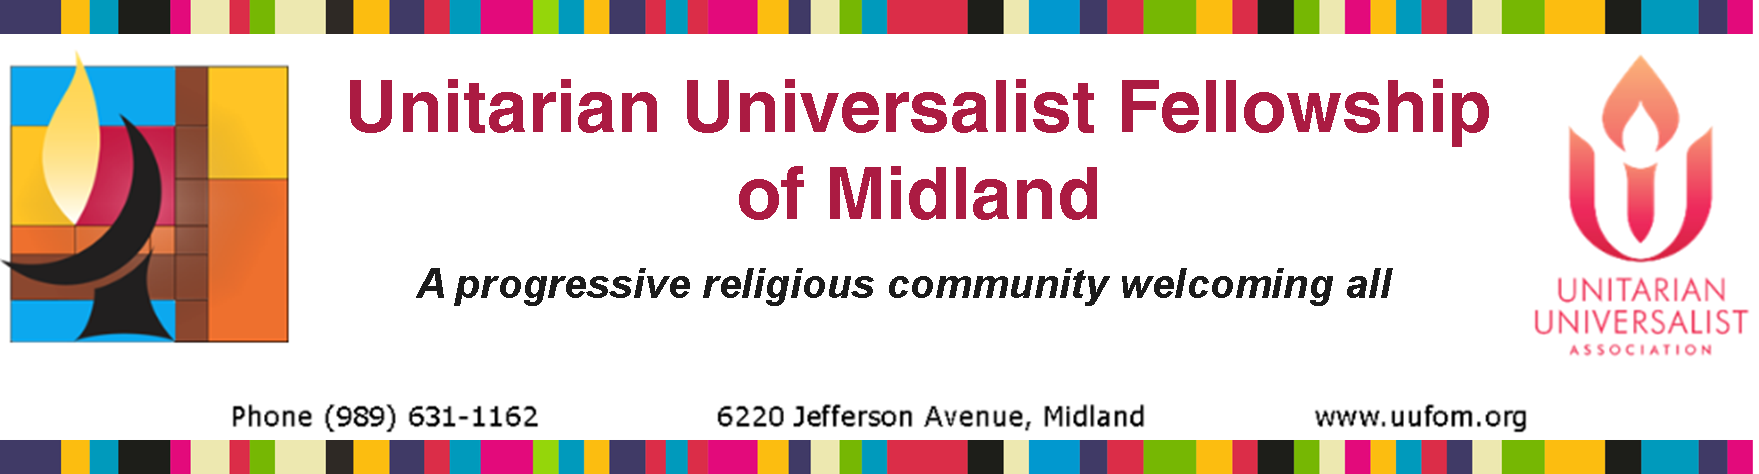 A progressive religious community welcoming all